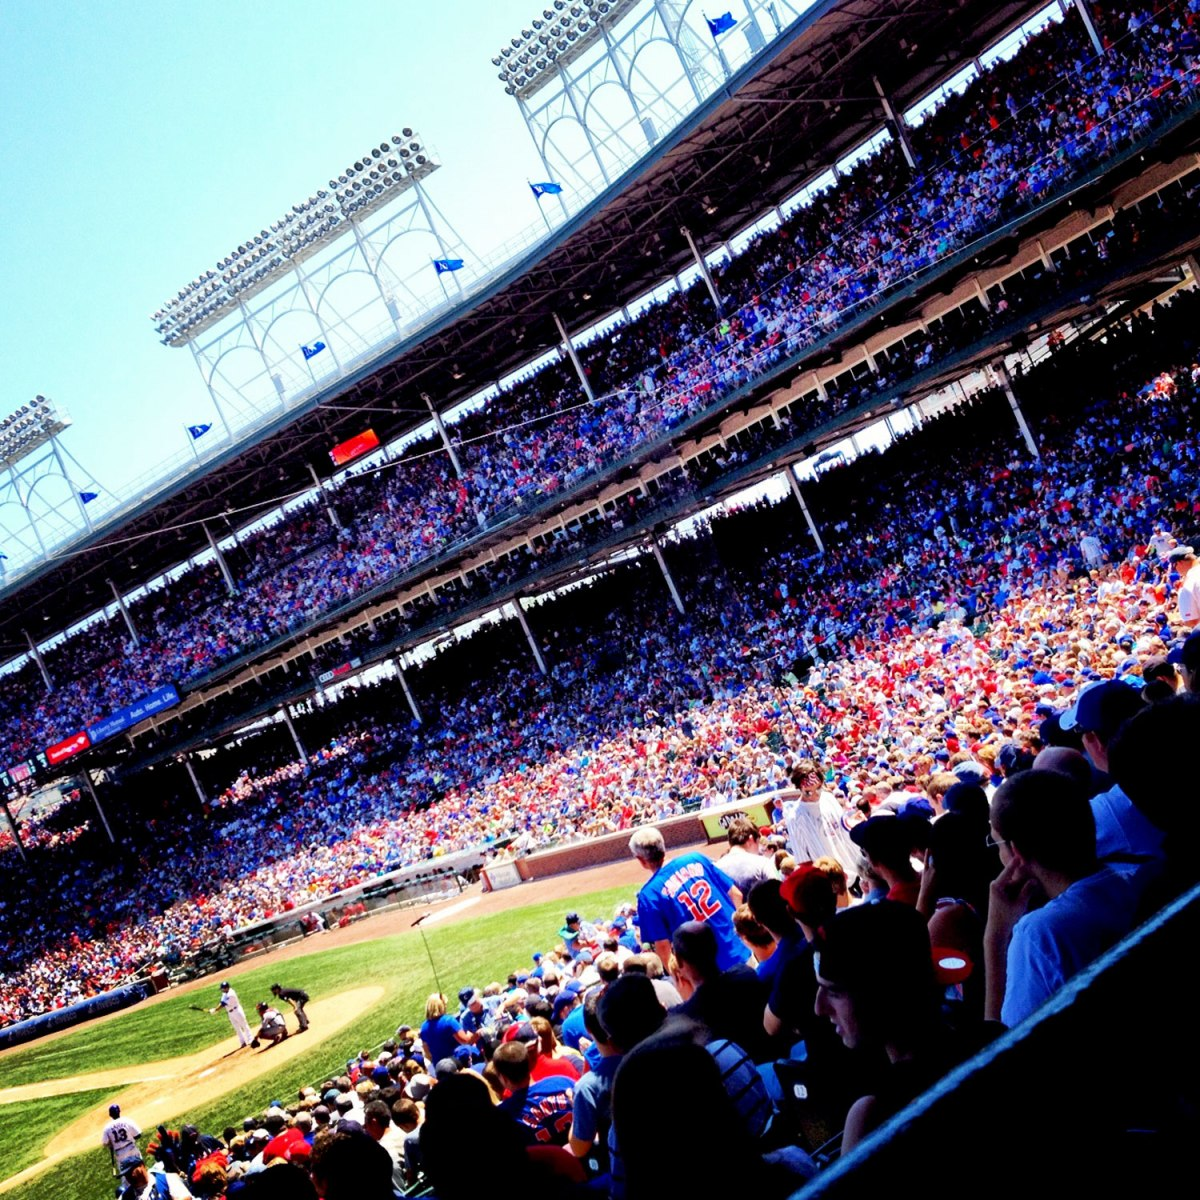 Cubs games and ghosts